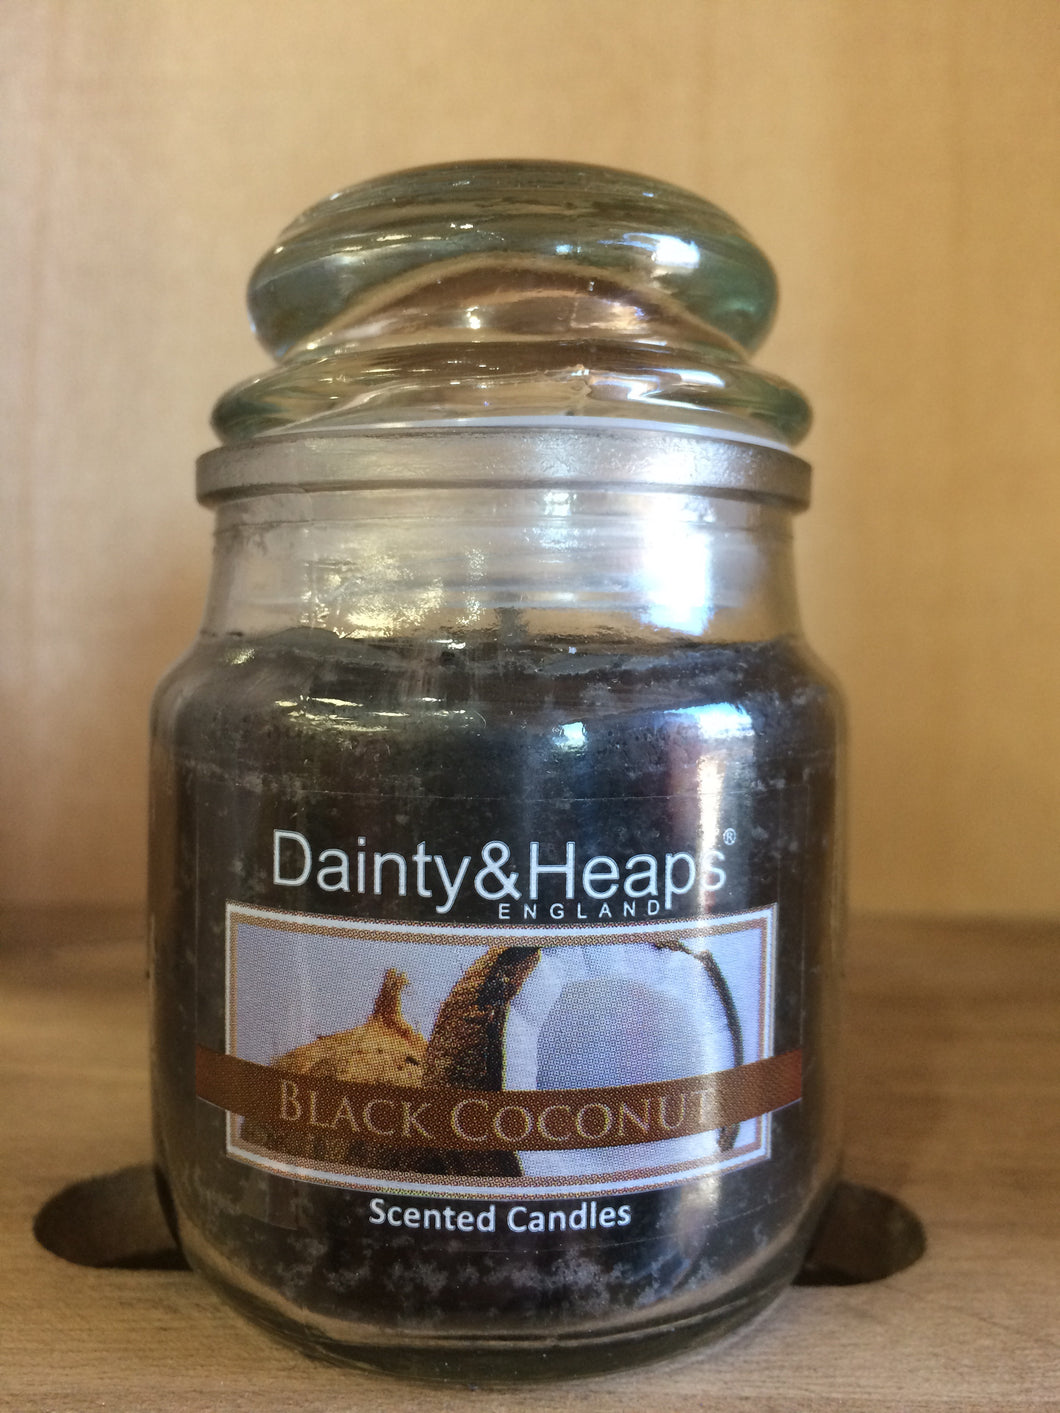 Dainty & Heaps Black Coconut Scented Candle 3oz